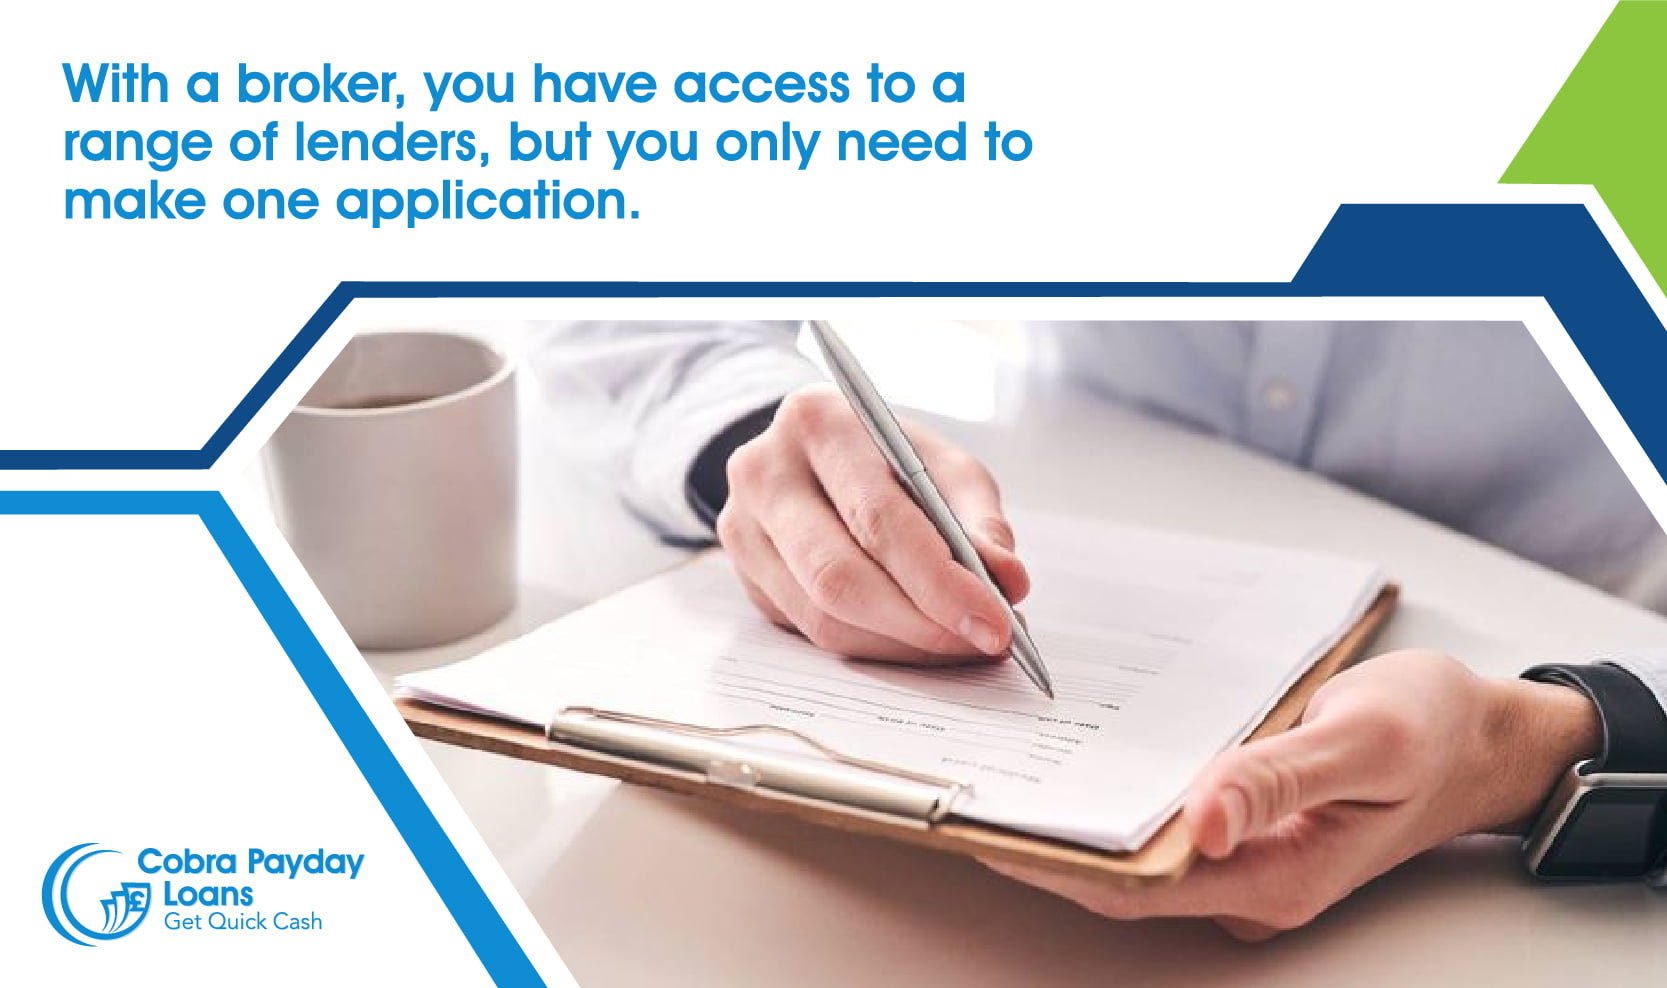 With a broker, you have access to a range of lenders, but you only need to make one application.